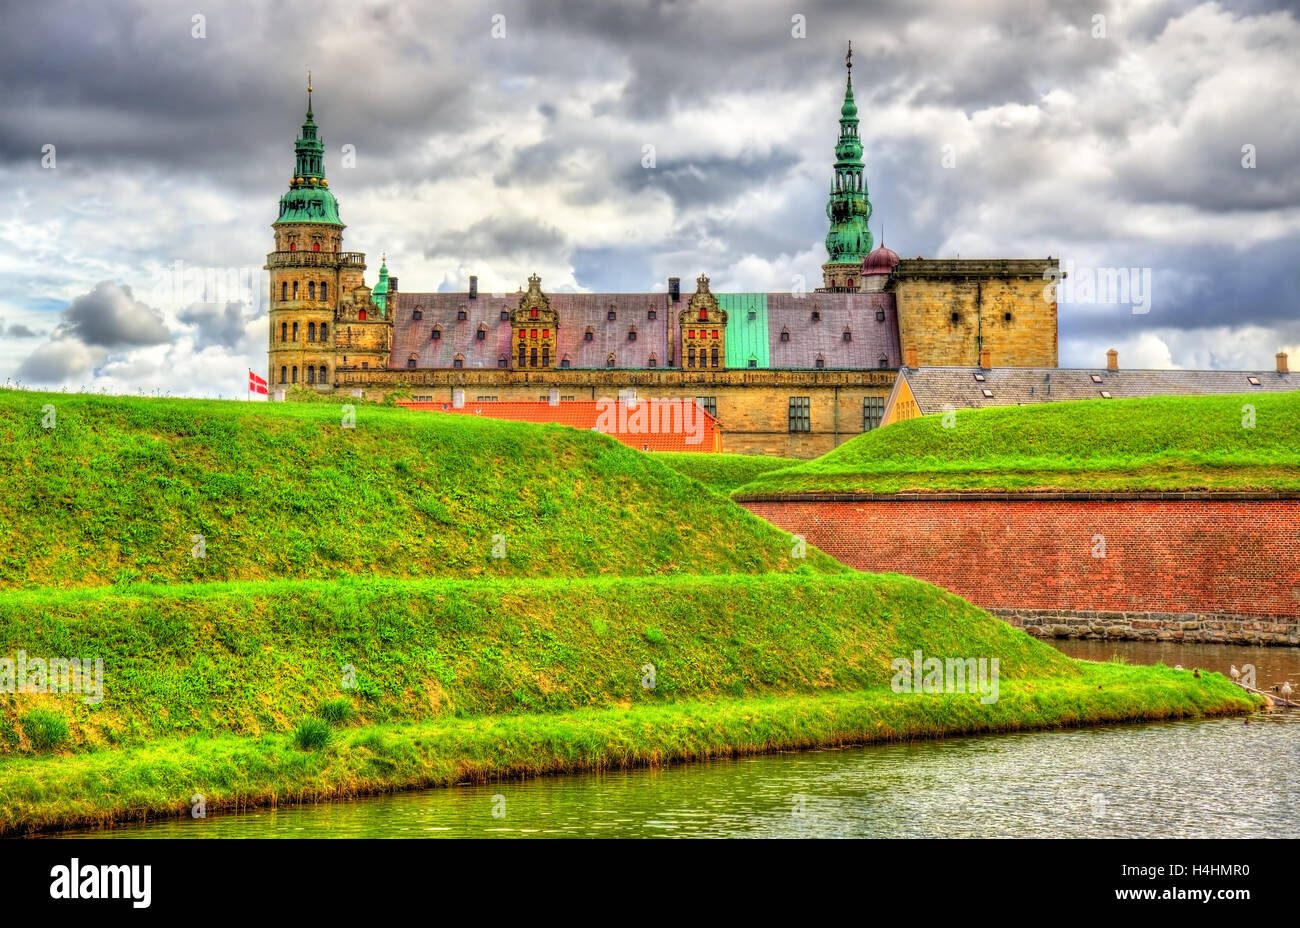 Kronborg Castle, known as Elsinore in the Tragedy of Hamlet - Denmark - Stock Image